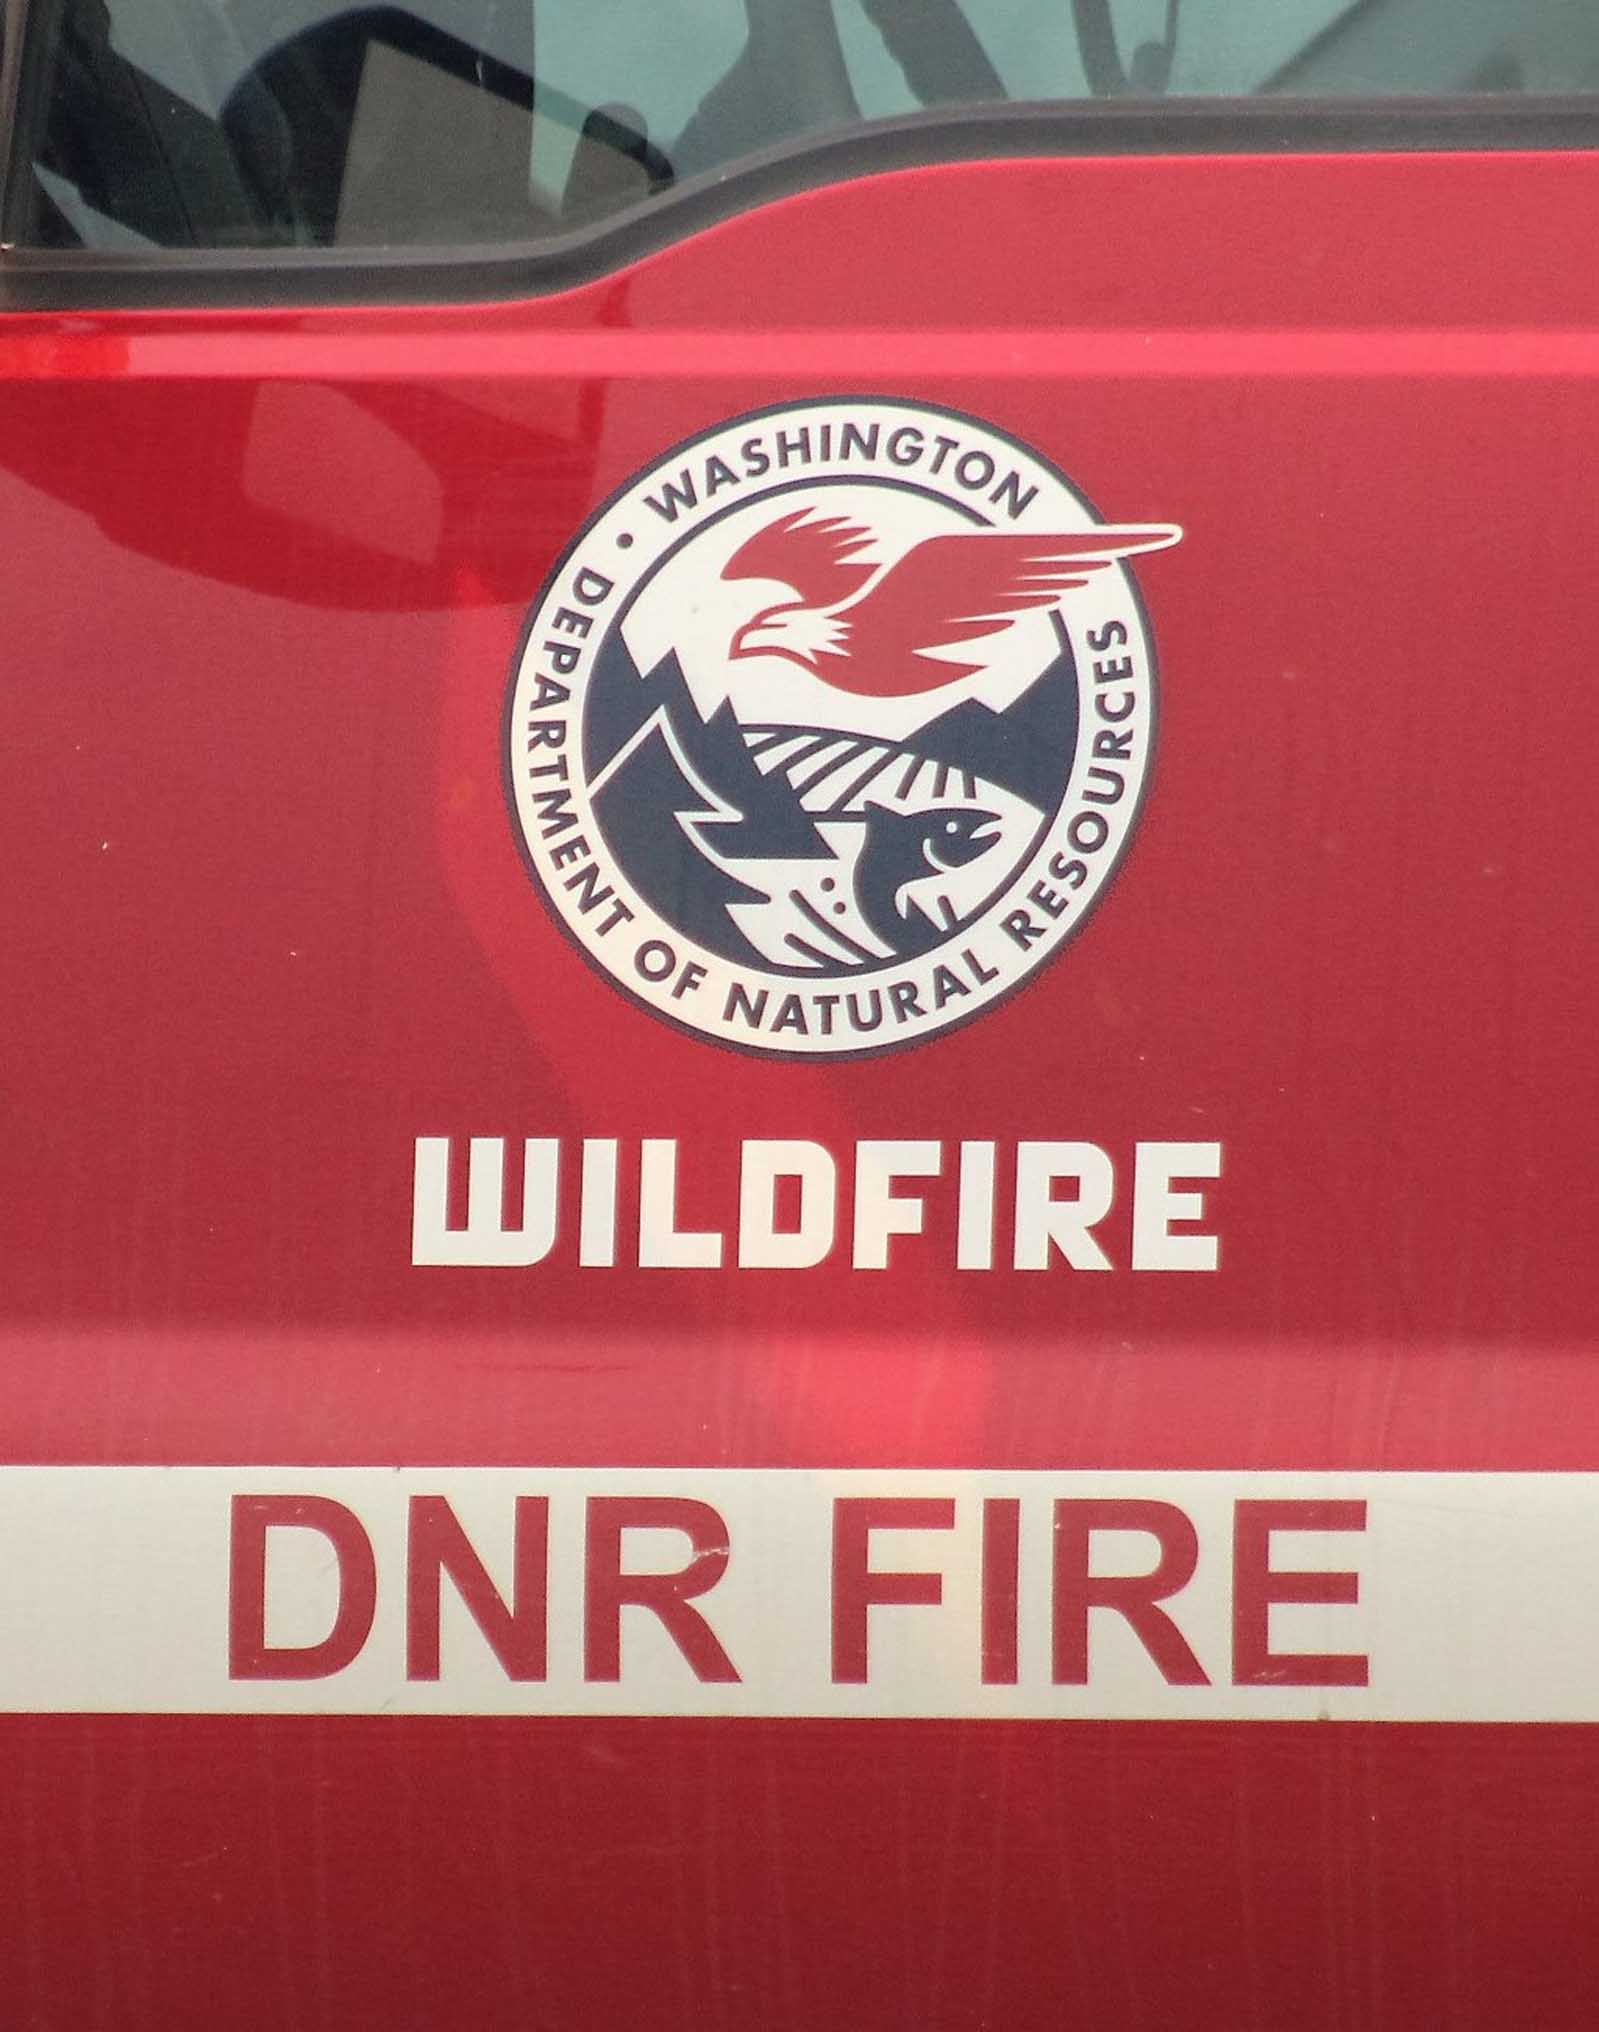 A DNR crew from Twisp was first on the scene as the fire spread.